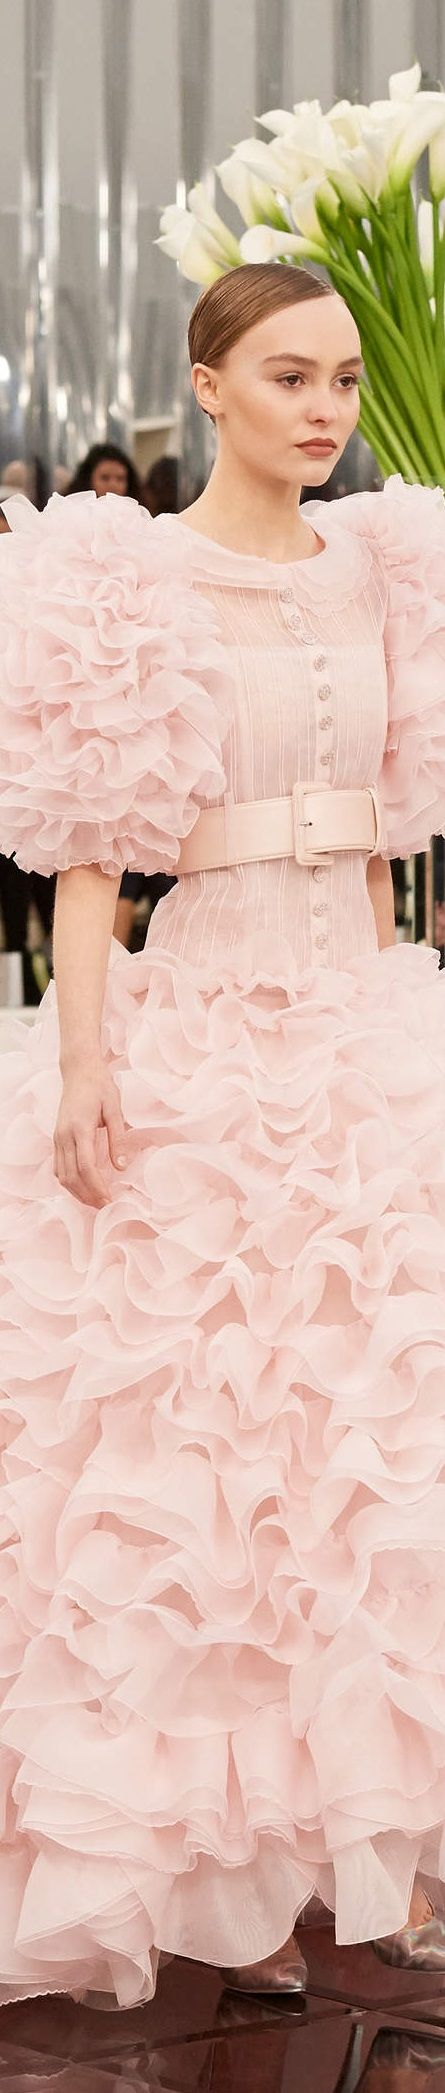 Chanel | Bridal Gown (Details) | Spring/Summer 2017 | French | Haute Couture | Paris Fashion Week | Lily-Rose Depp | This dress opens the show.